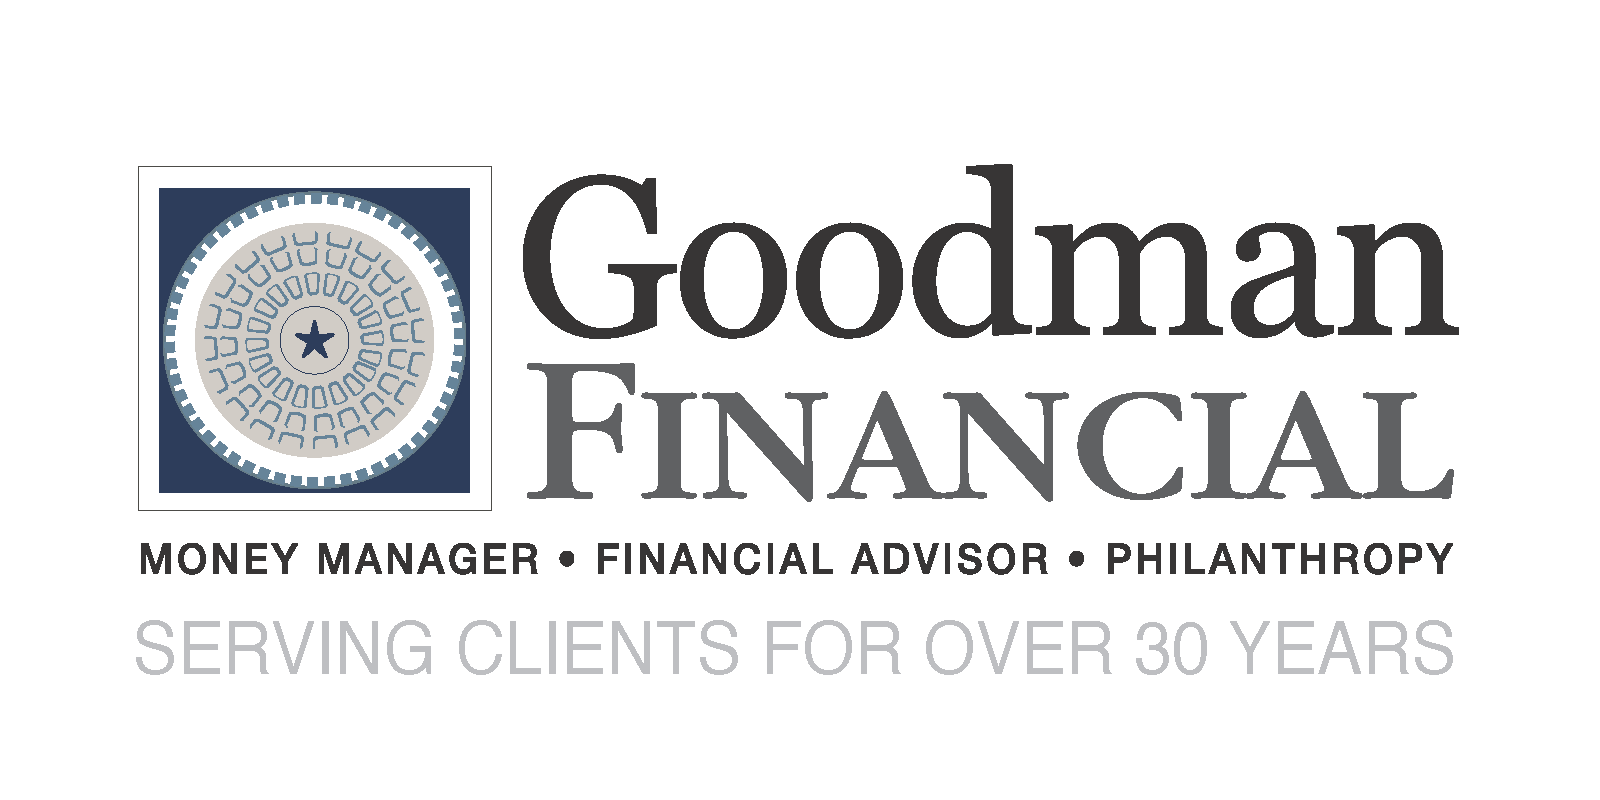 GOODMAN-FINANCIAL-LOGO